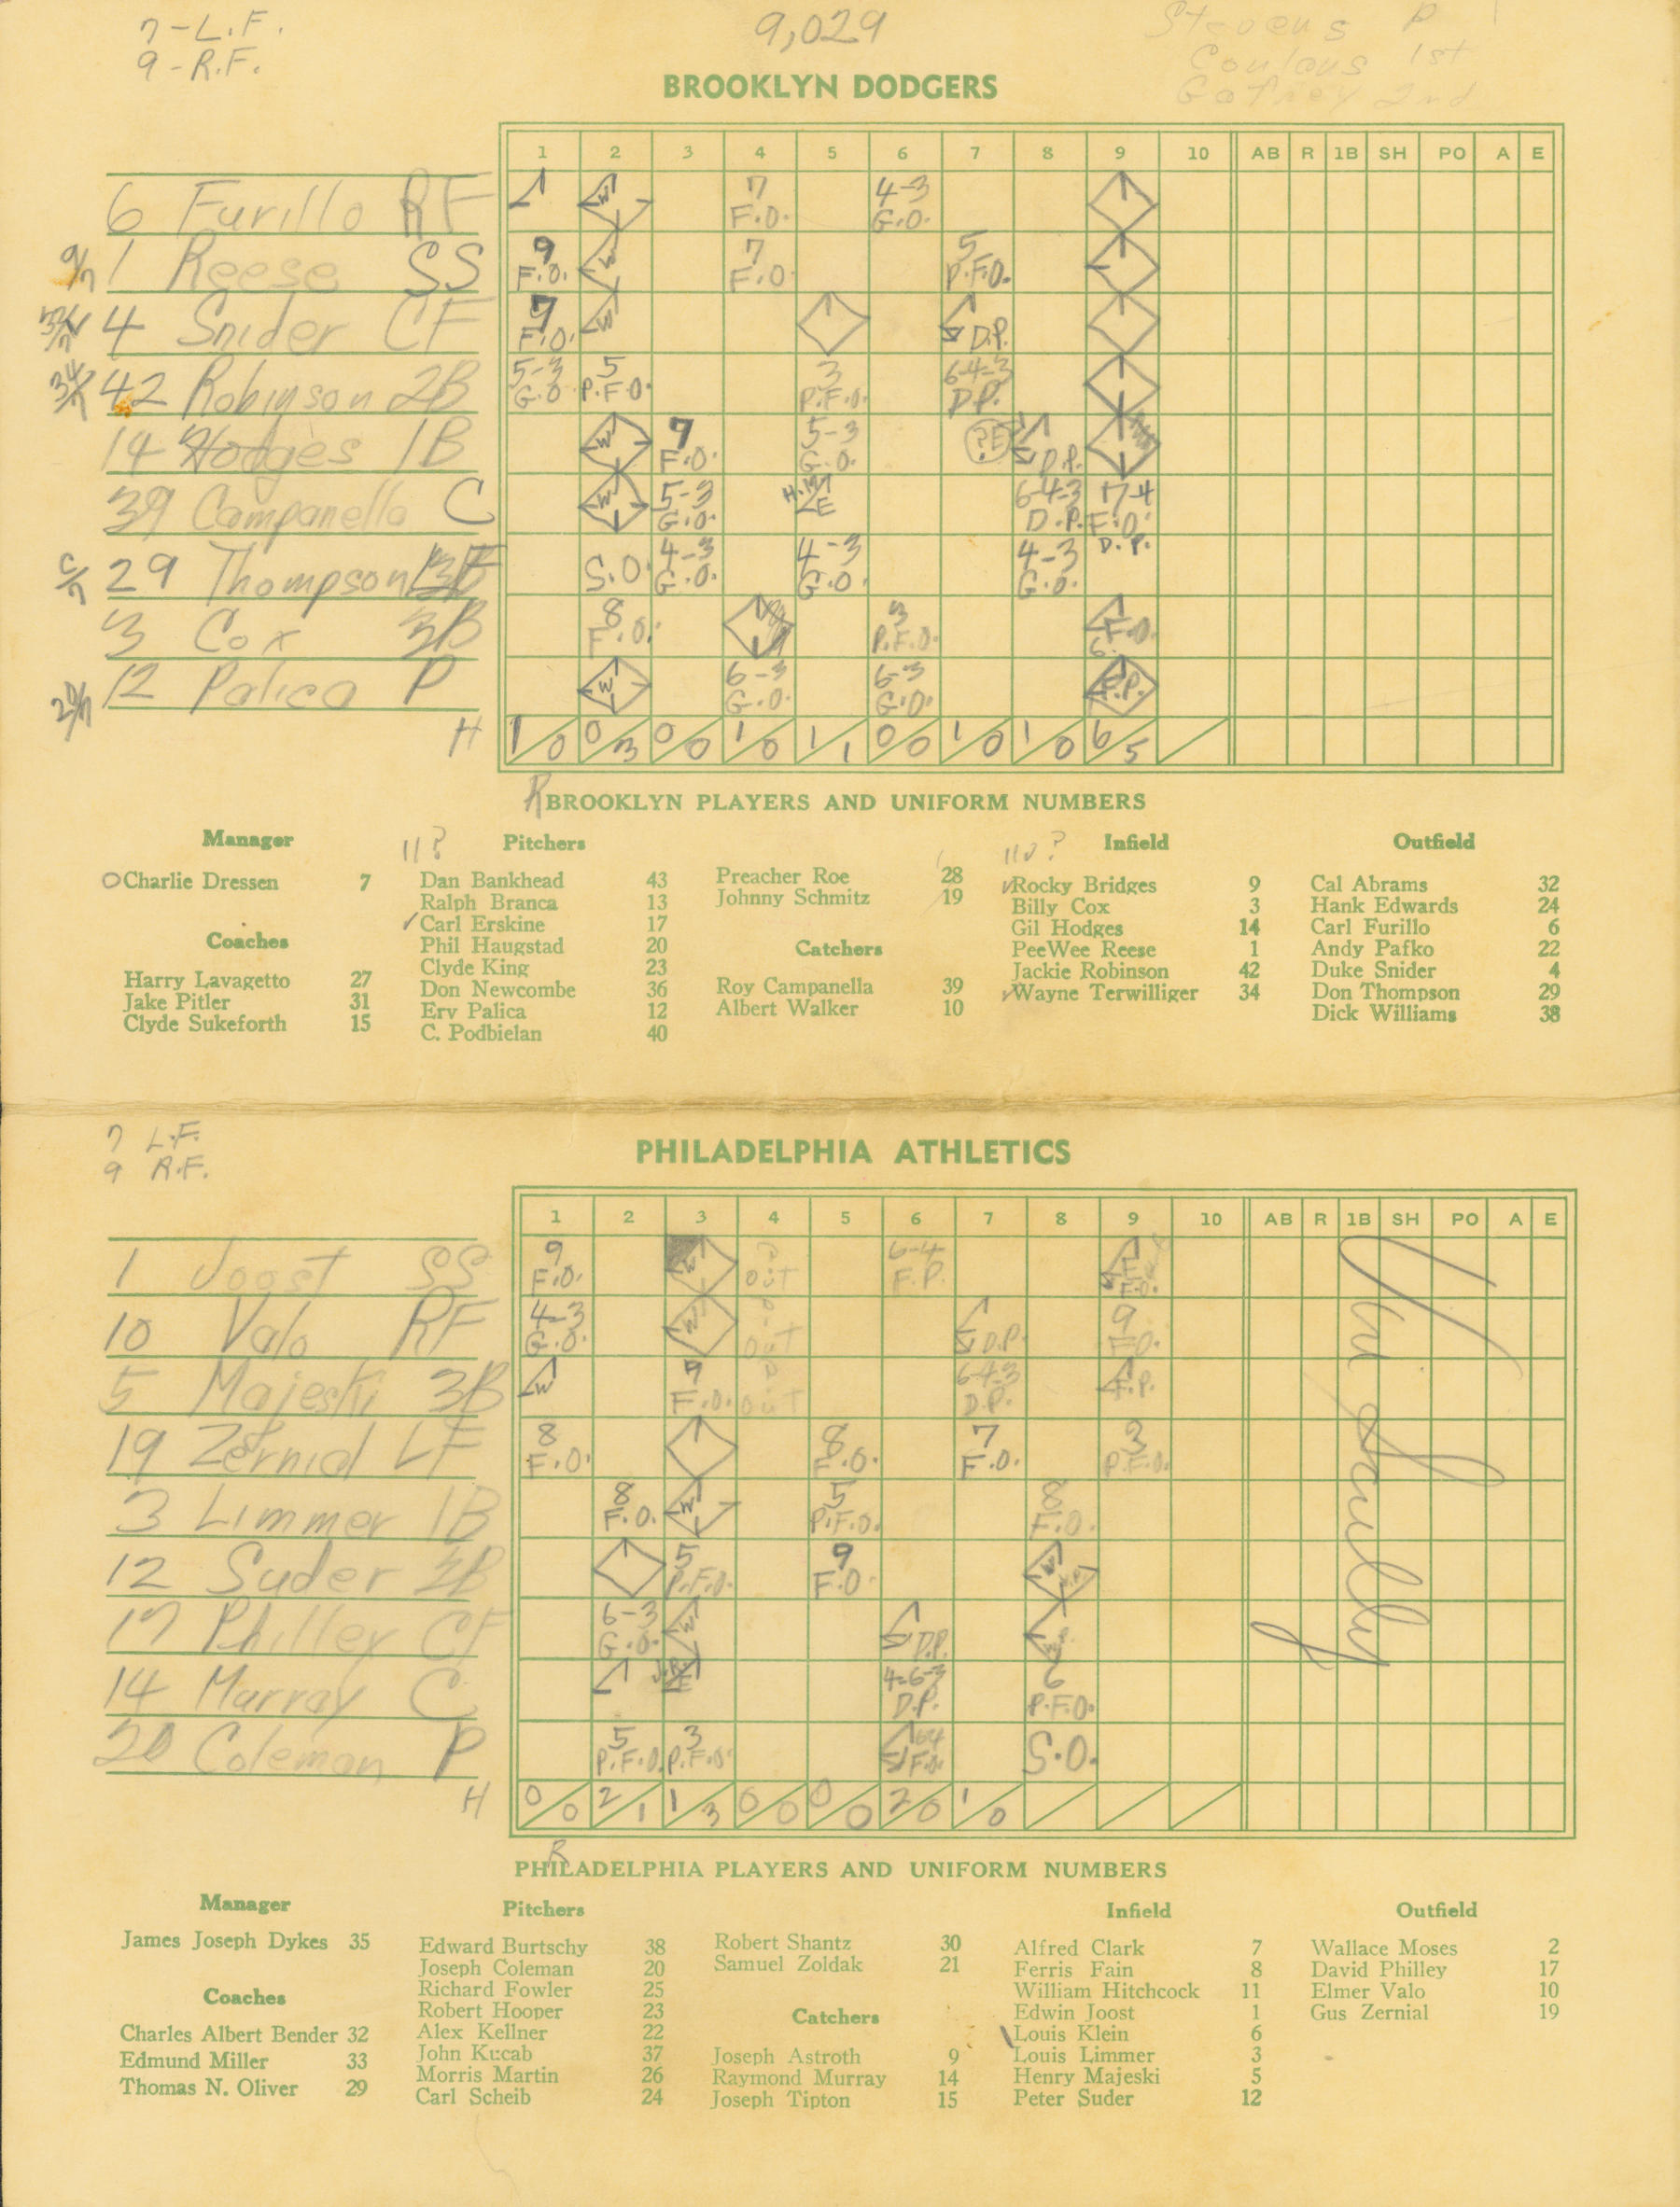 On July 23, 1951 Vin Scully called the annual Hall of Fame Game at Doubleday Field. The scorecard from that game is held at the Baseball Hall of Fame. (National Baseball Hall of Fame)